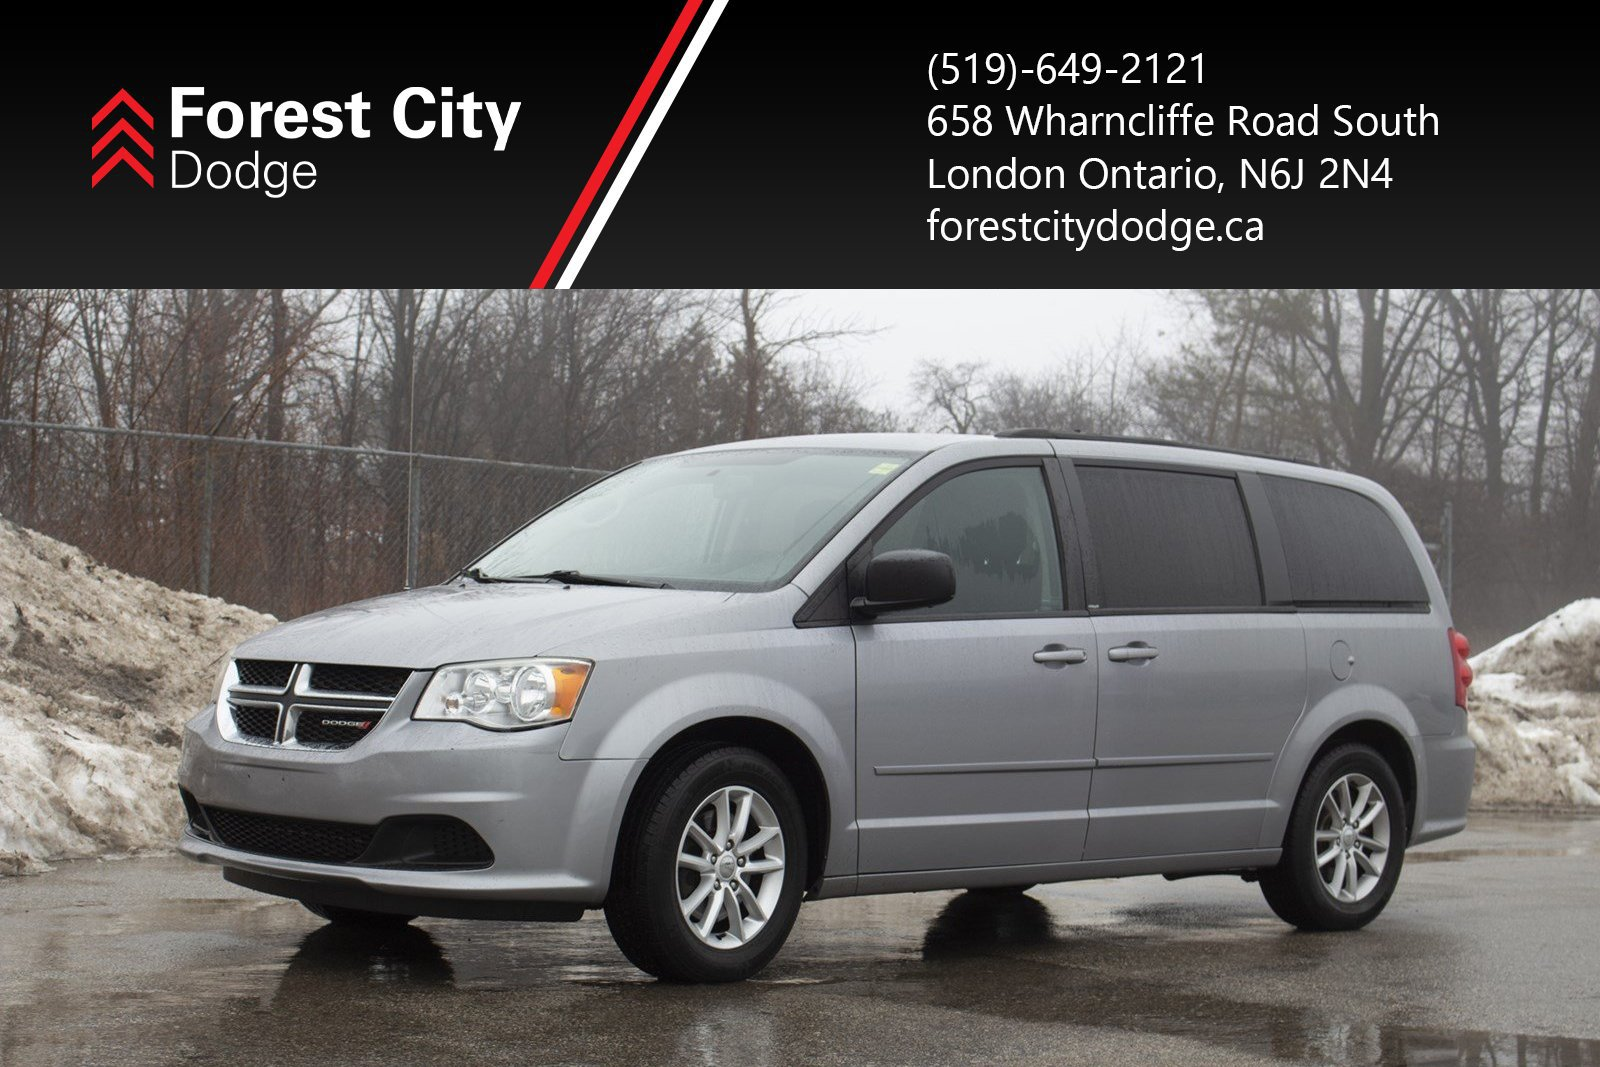 Pre-Owned 2013 Dodge Grand Caravan SXT | Back seat DVD player | Lots of Storage | Great Family Vehicle